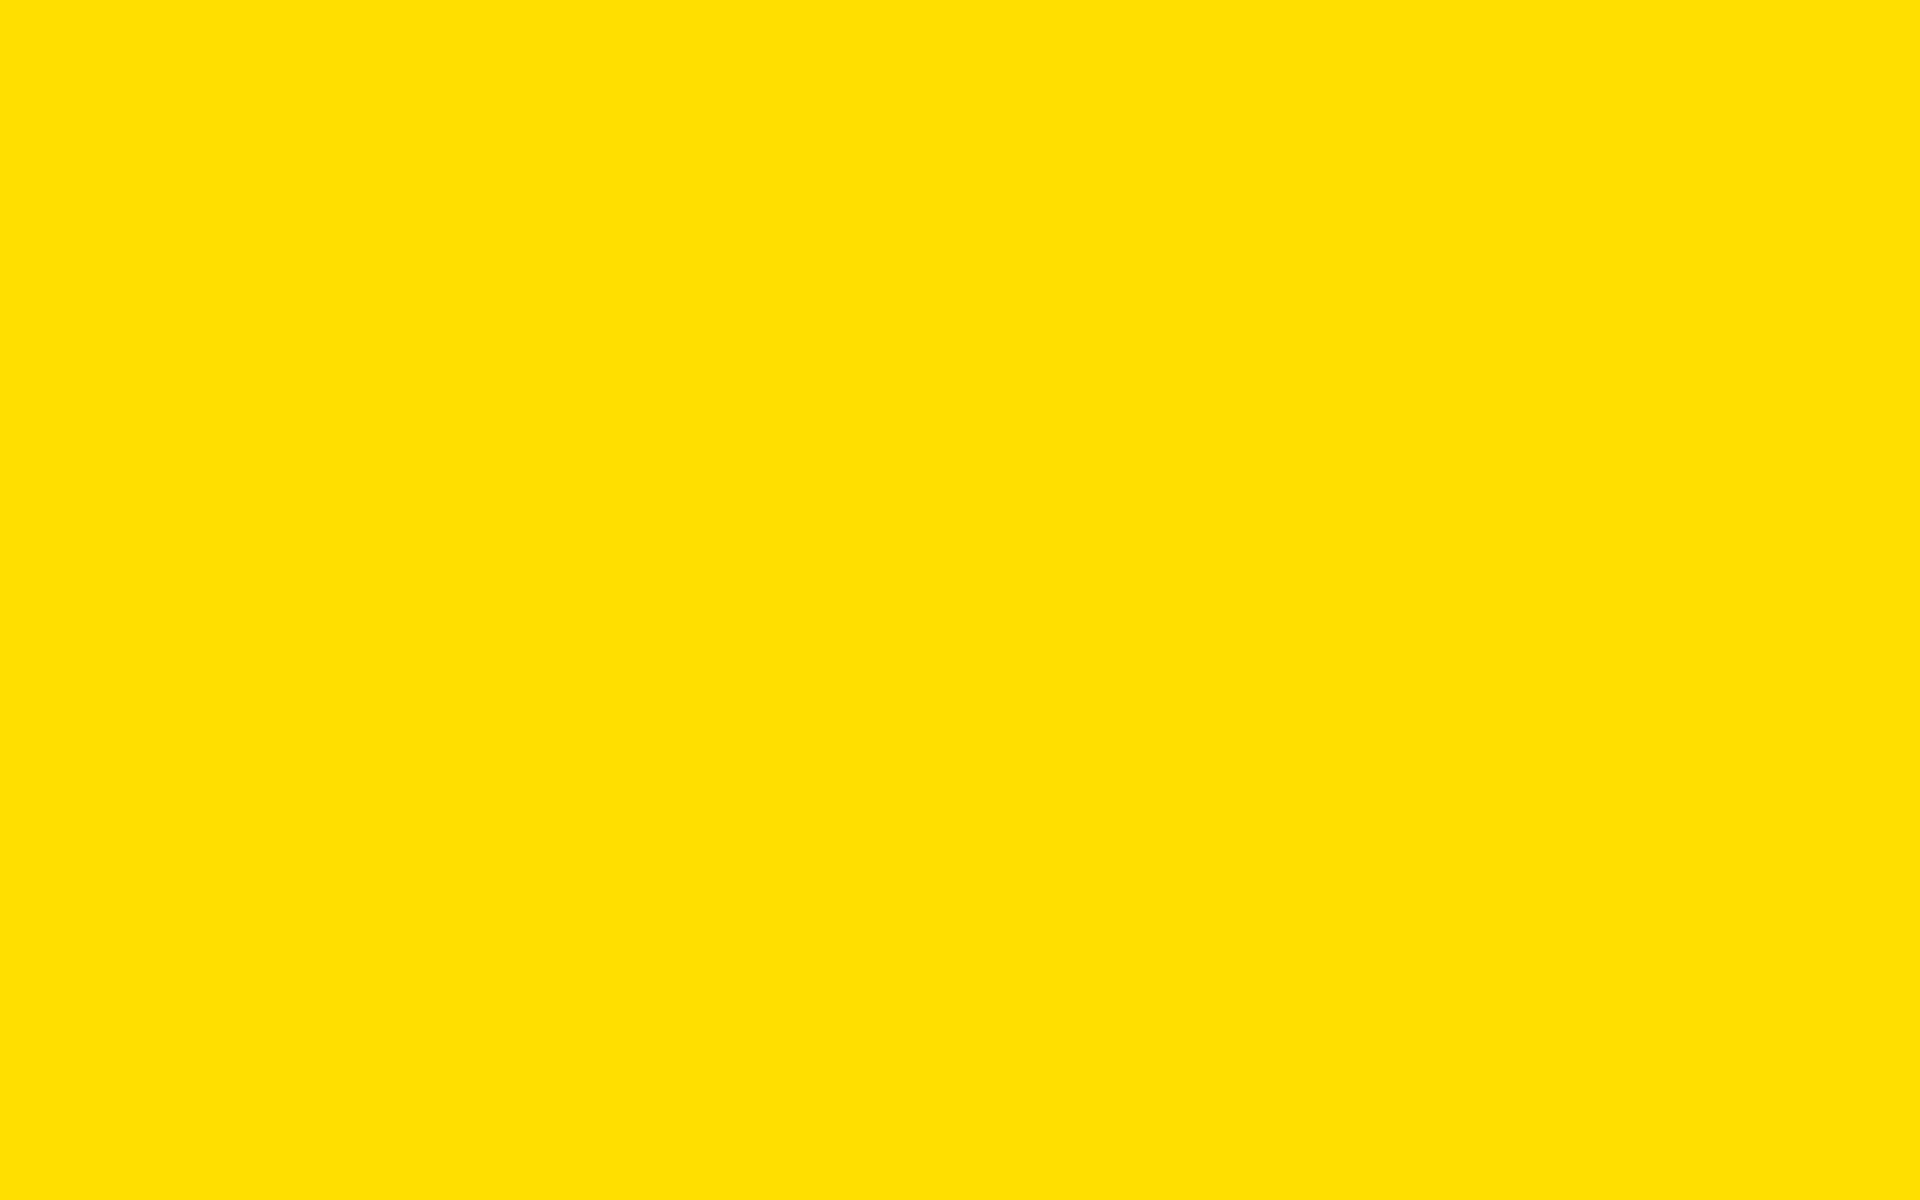 1920x1200 Yellow Pantone Solid Color Background